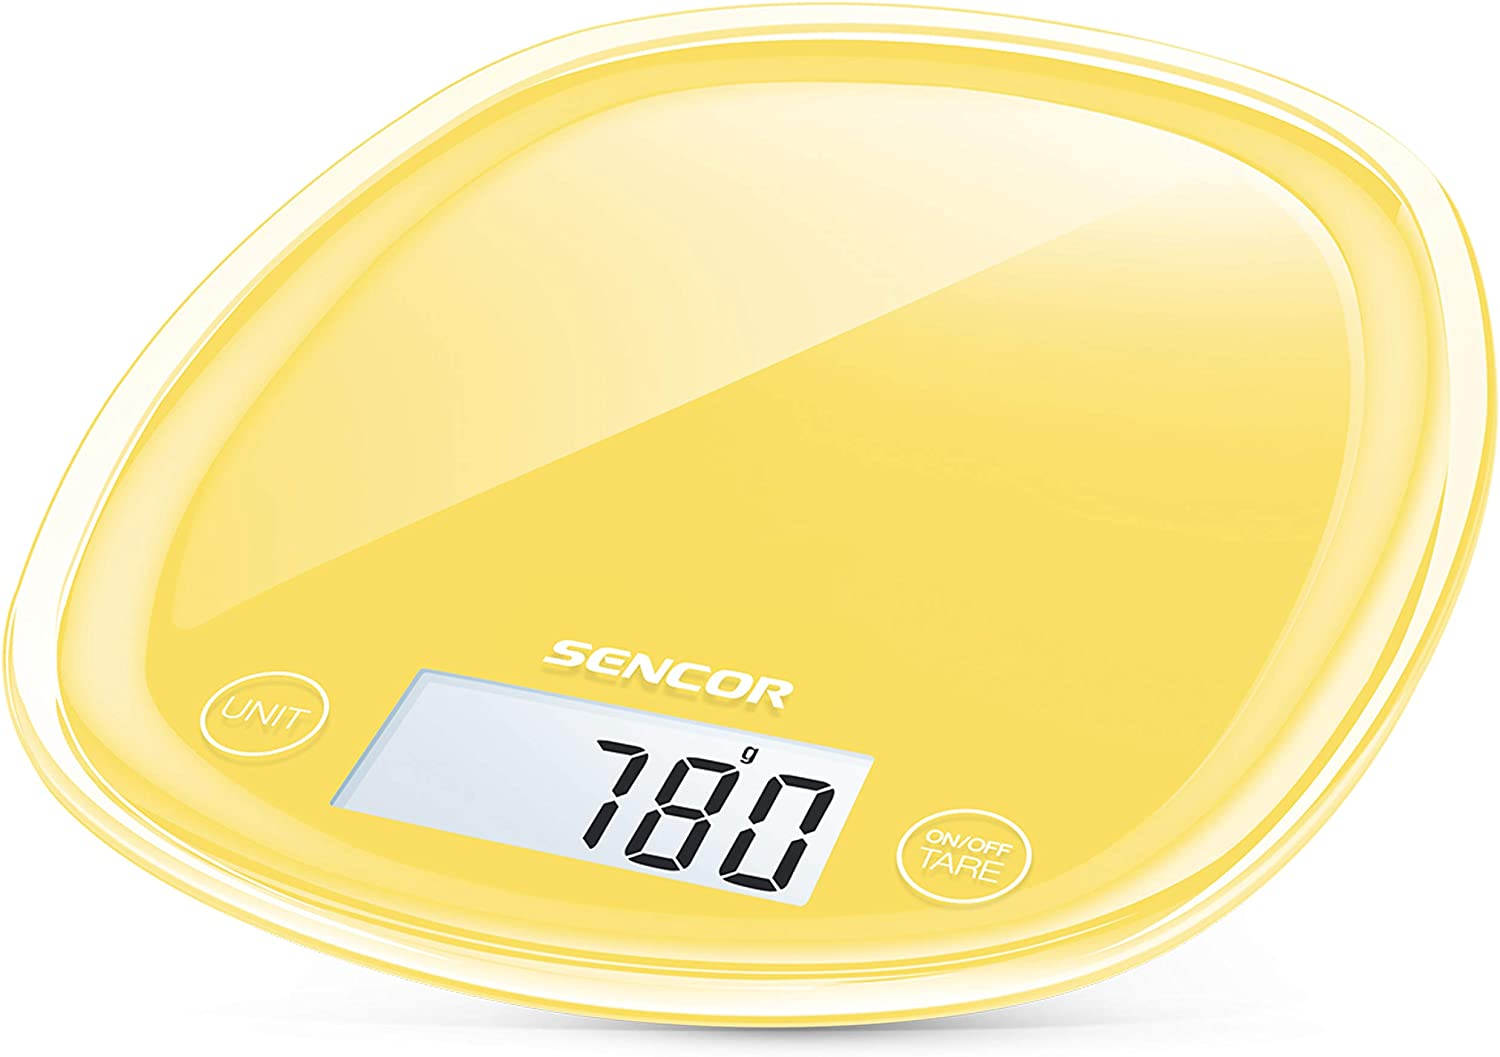 Sencor Digital Kitchen Scale with Large Backlit LCD Display and Touch Control Sensors, Small, Sunflower Yellow